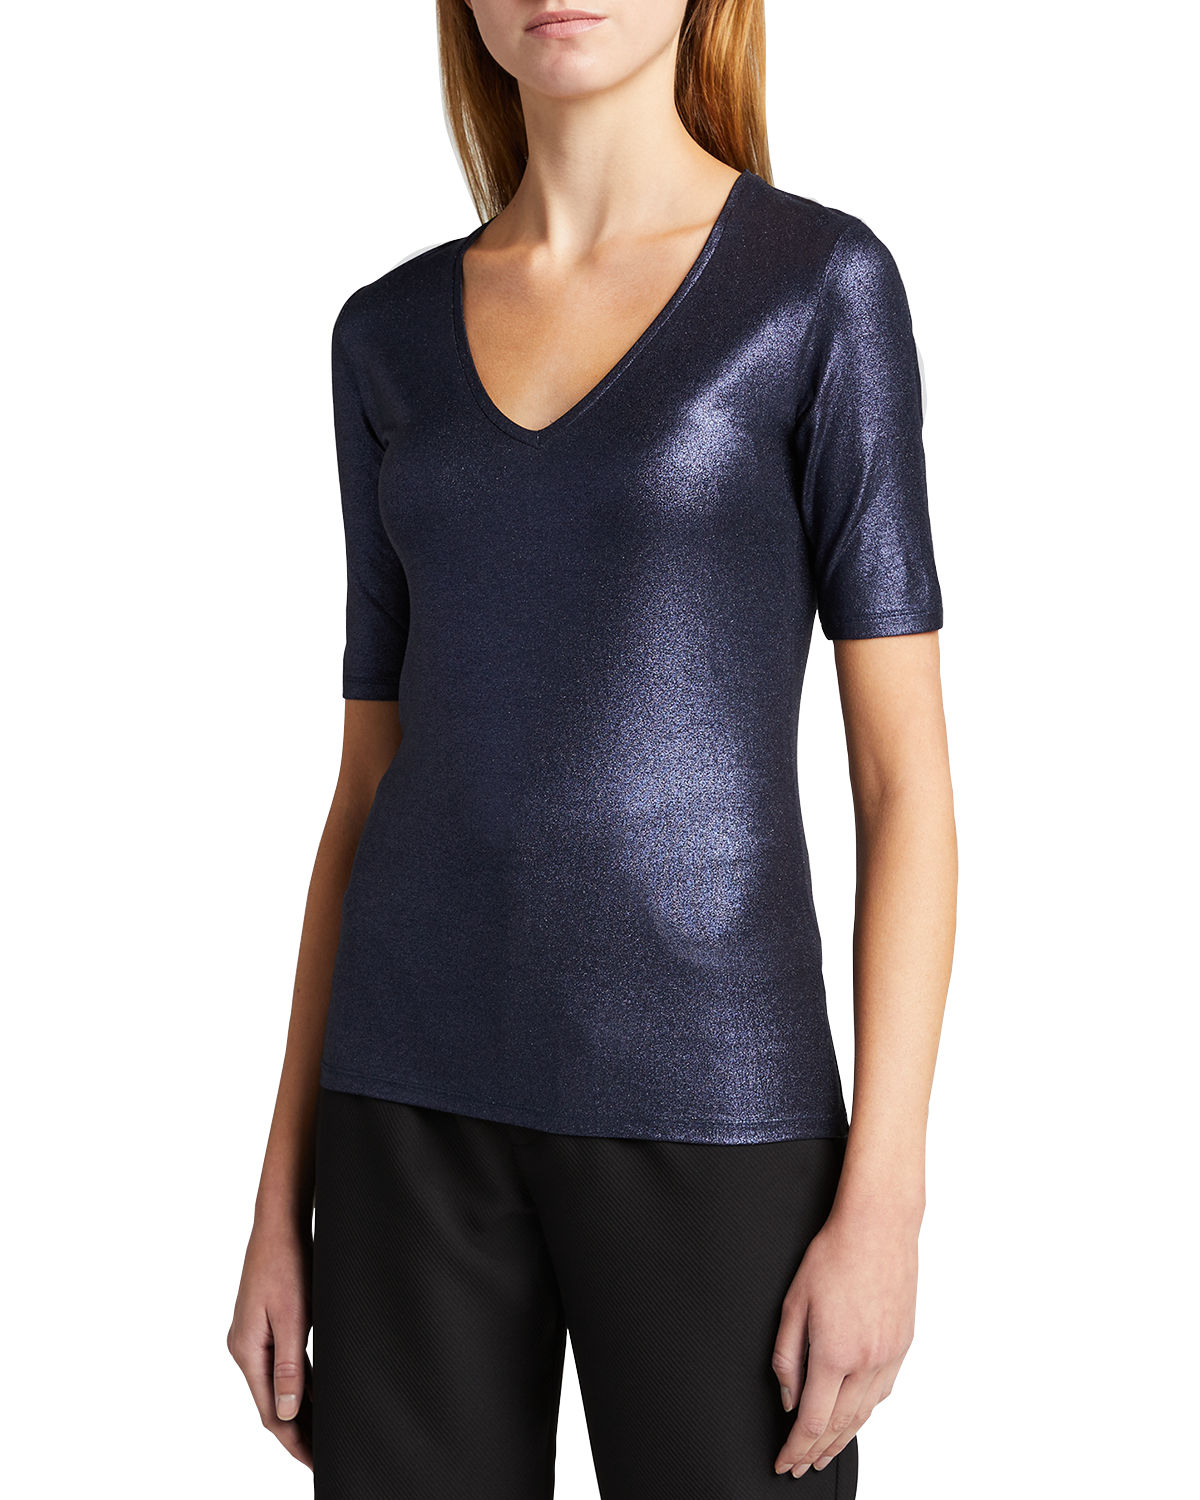 Majestic METALLIC SOFT TOUCH ELBOW SLEEVE V-NECK TOP